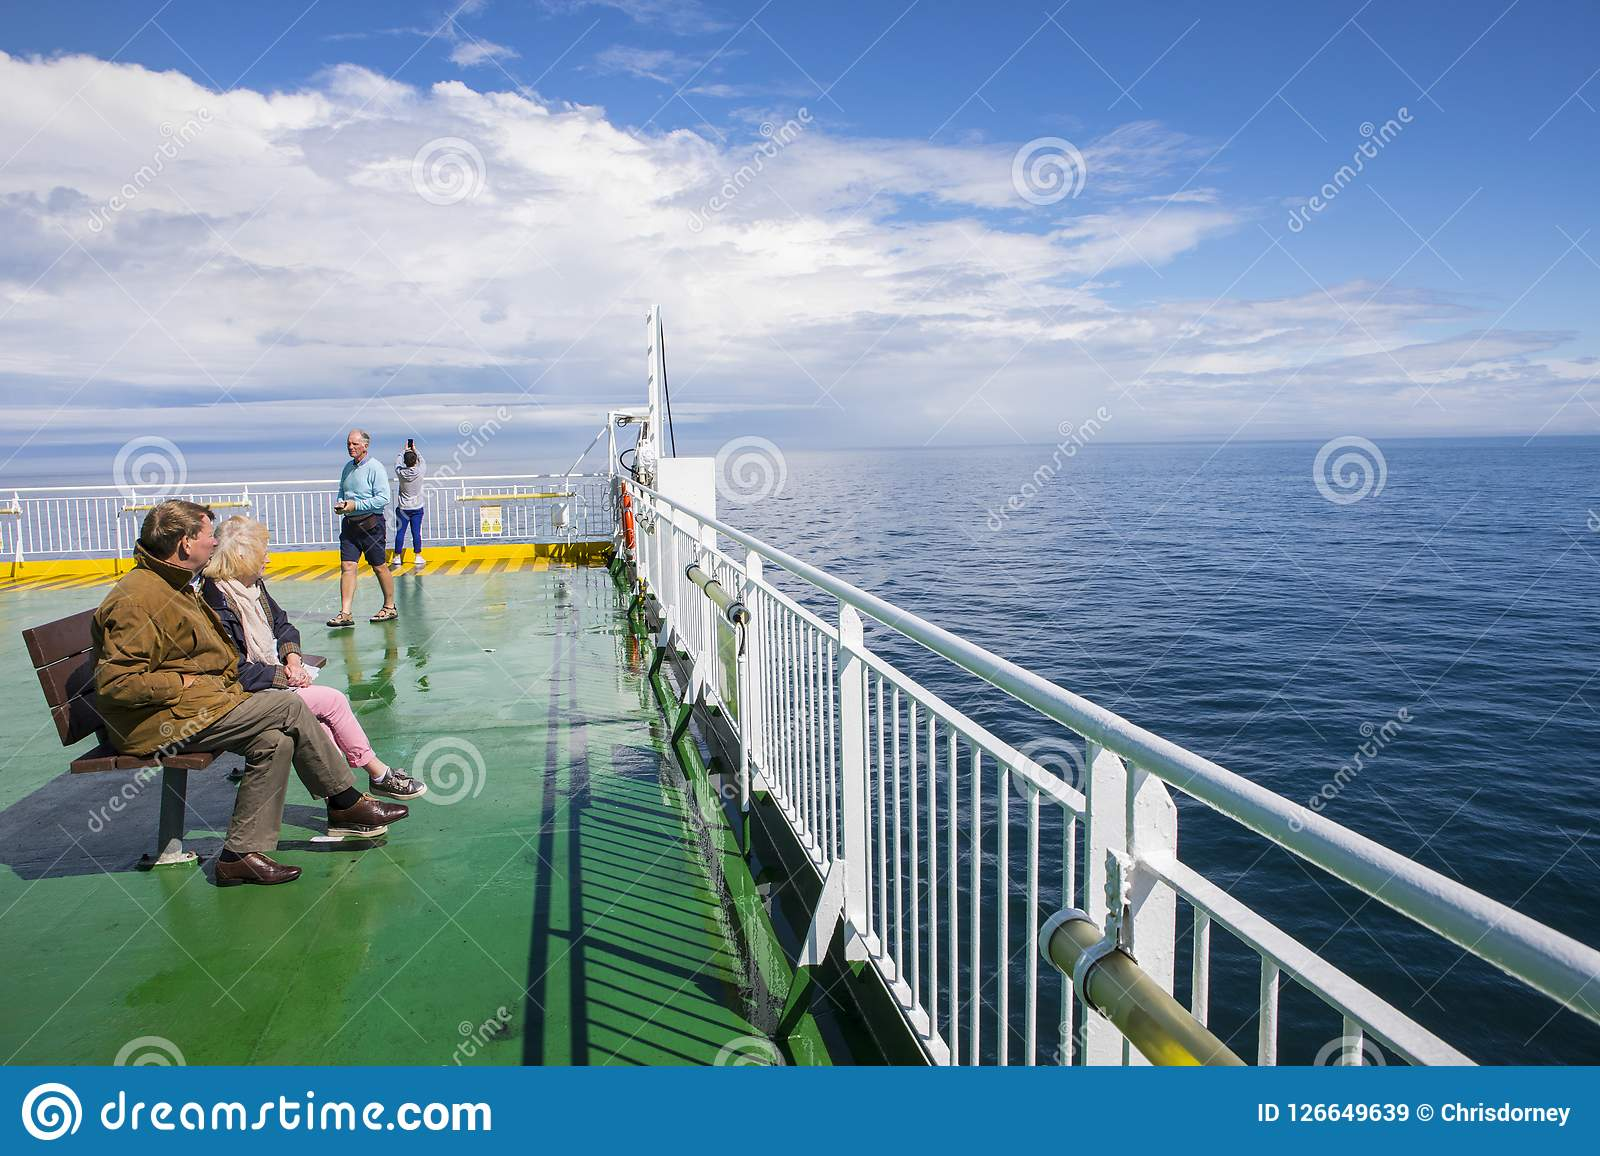 Ferry To Ireland From Holyhead >> Ferry On The Irish Sea Editorial Stock Image Image Of Ship